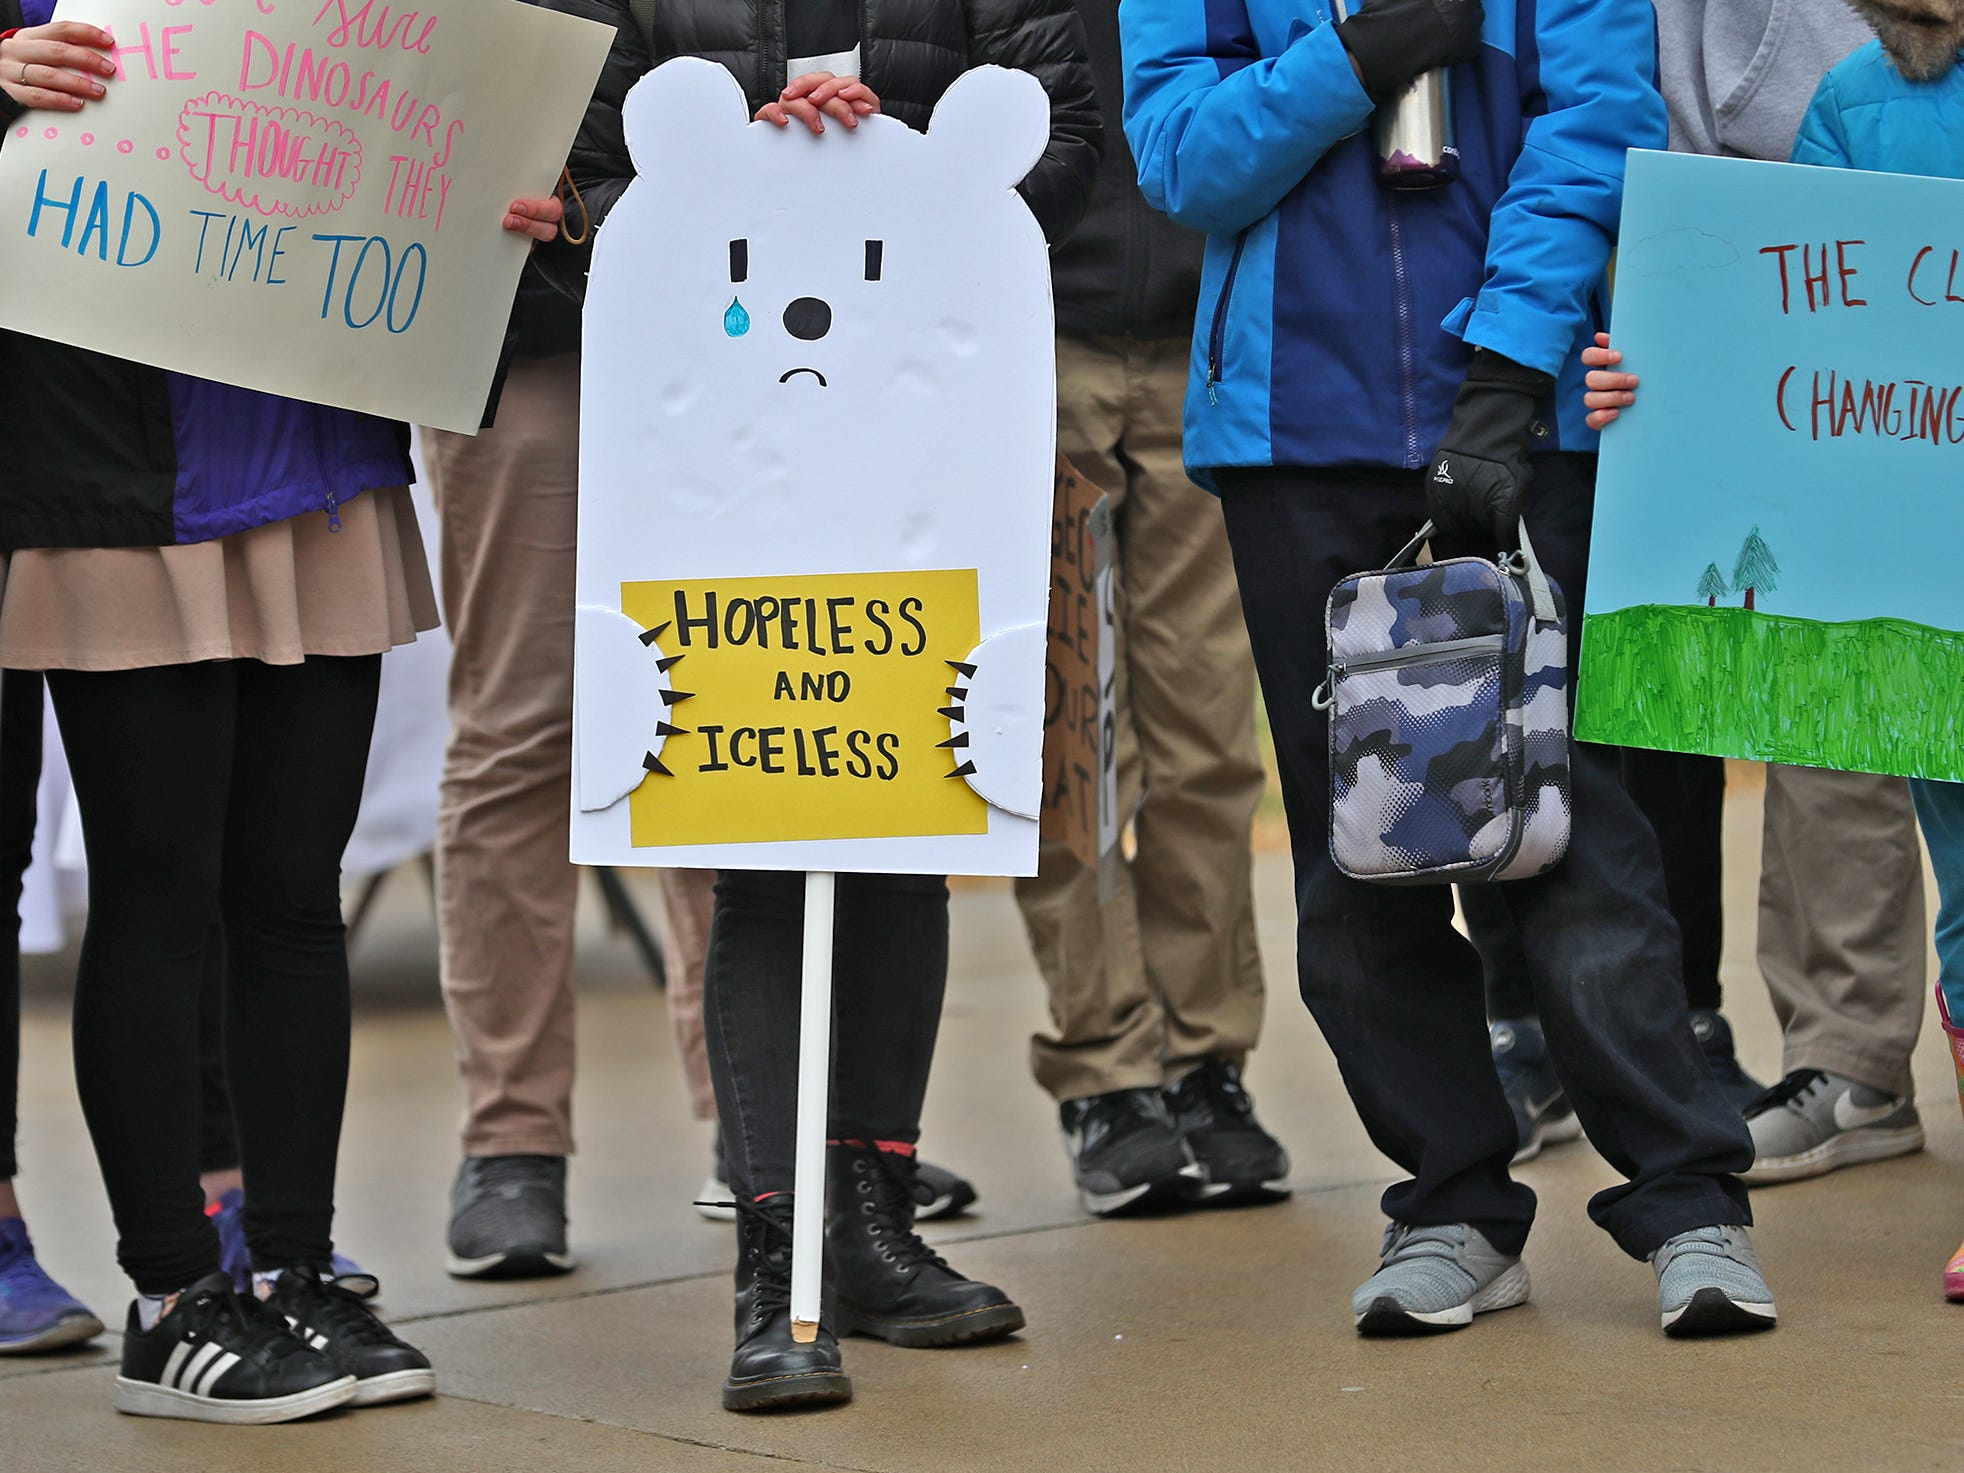 uStudents come together with a variety of signs during the Indiana part of the international Climate Strike, Friday, March 15, 2019, held outside the Indiana Statehouse.  Following in the footsteps of 16-year-old Swedish trailblazer, Greta Thunberg, students around the world are skipping school to protest government inaction on climate change.  The Indiana protest brought over 250 participants.